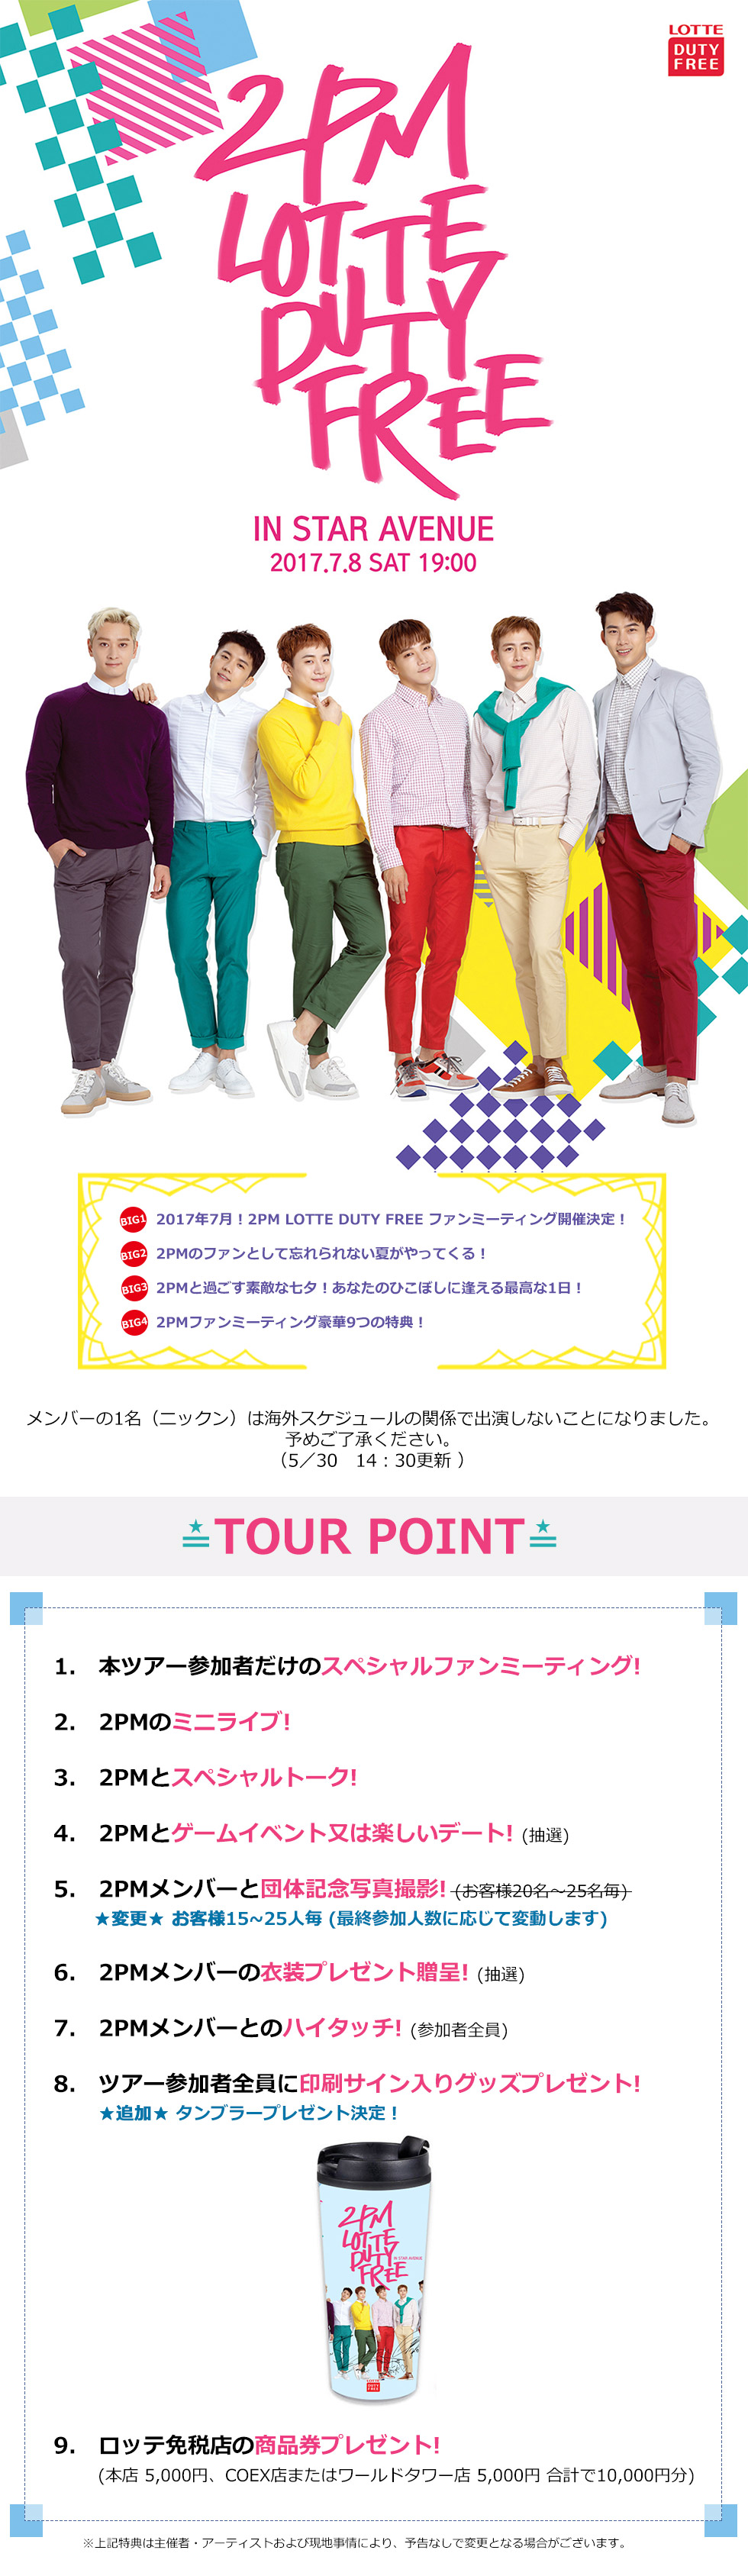 【日本公式】2017 2PM LOTTE DUTY FREE IN STAR AVENUE